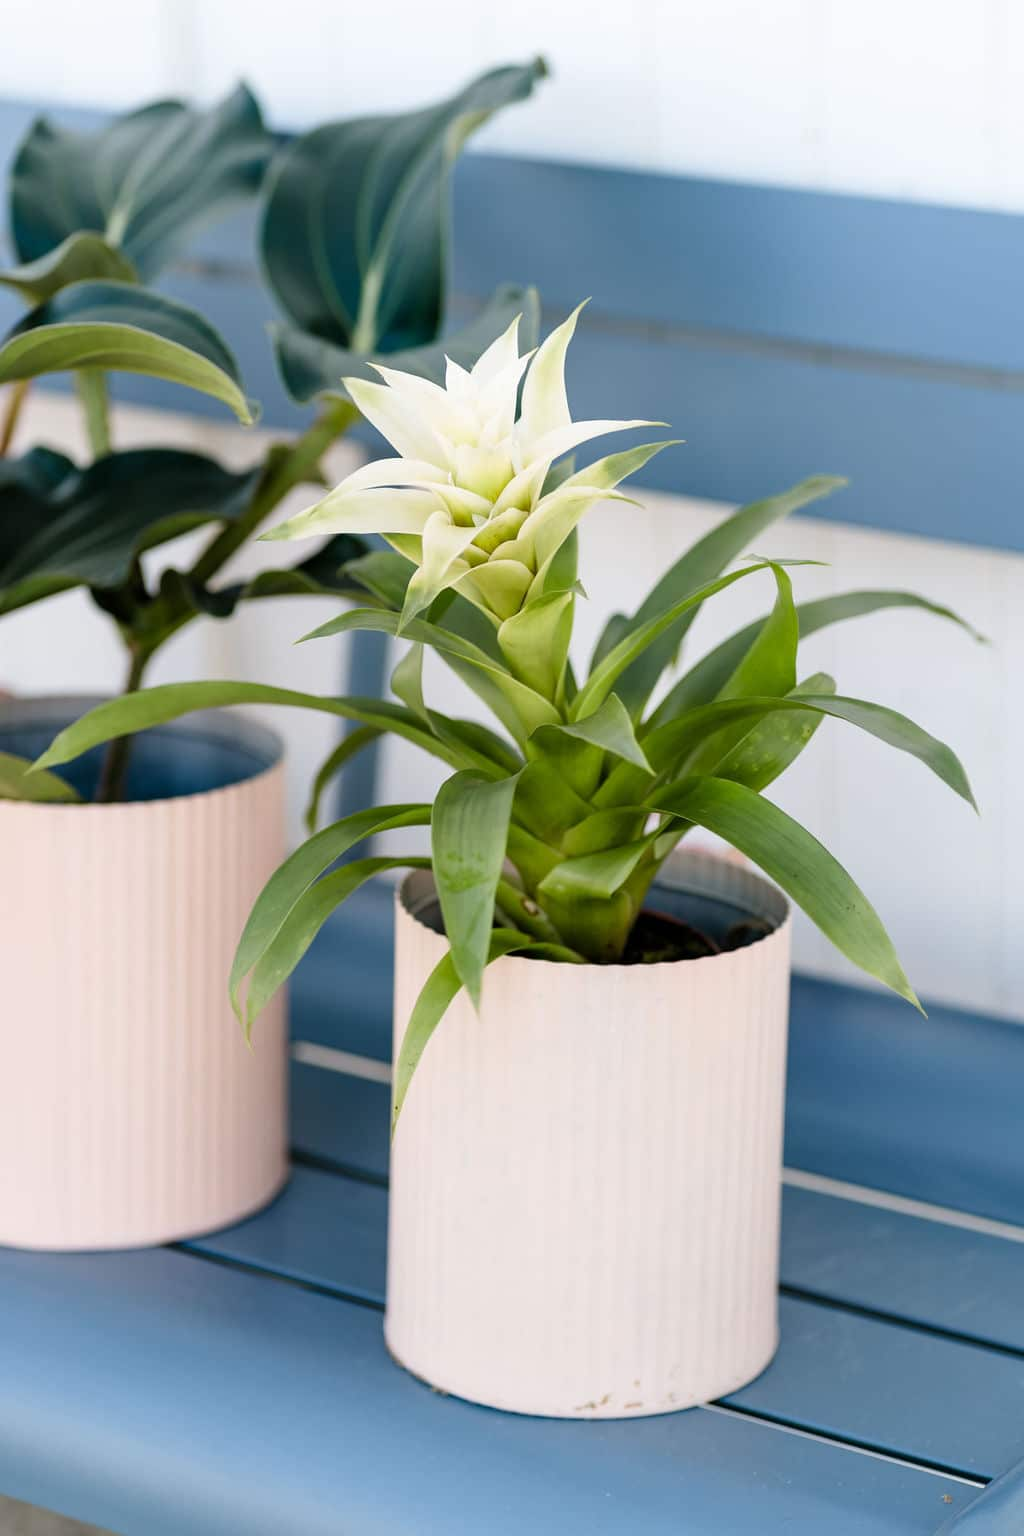 Spathiphyllum Airpurifying Plant